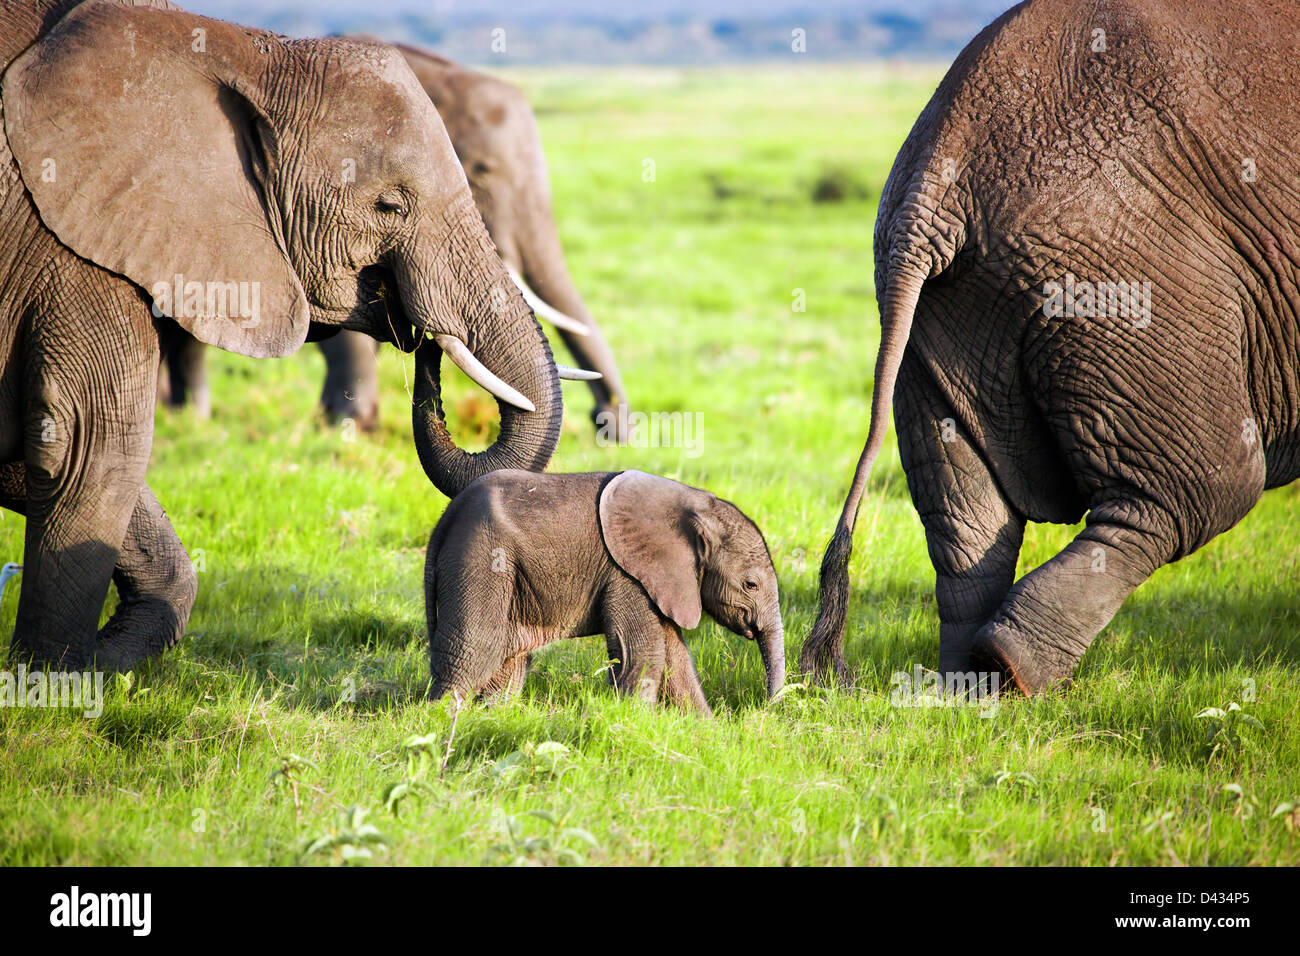 Baby elephant and family on African savanna in Amboseli National Park, Kenya, Africa Stock Photo